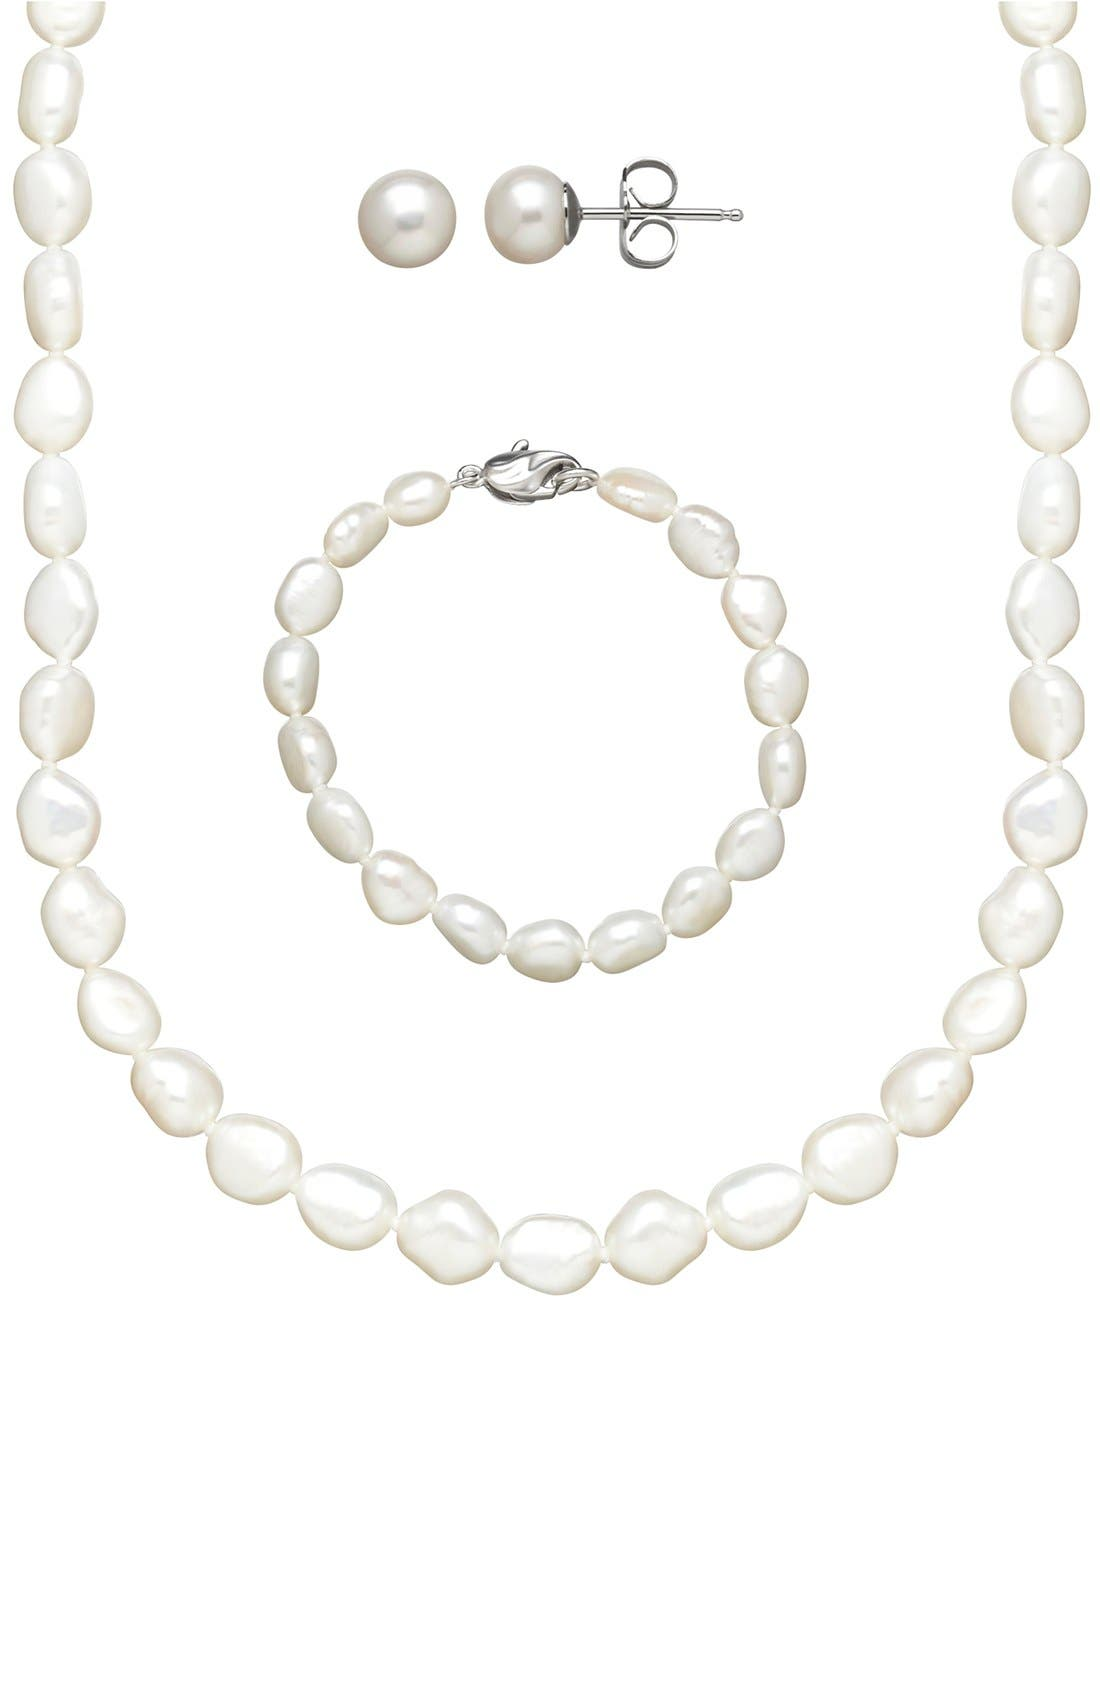 Alternate Image 1 Selected - HONORA Freshwater Pearl Necklace, Bracelet & Earrings (Girls)